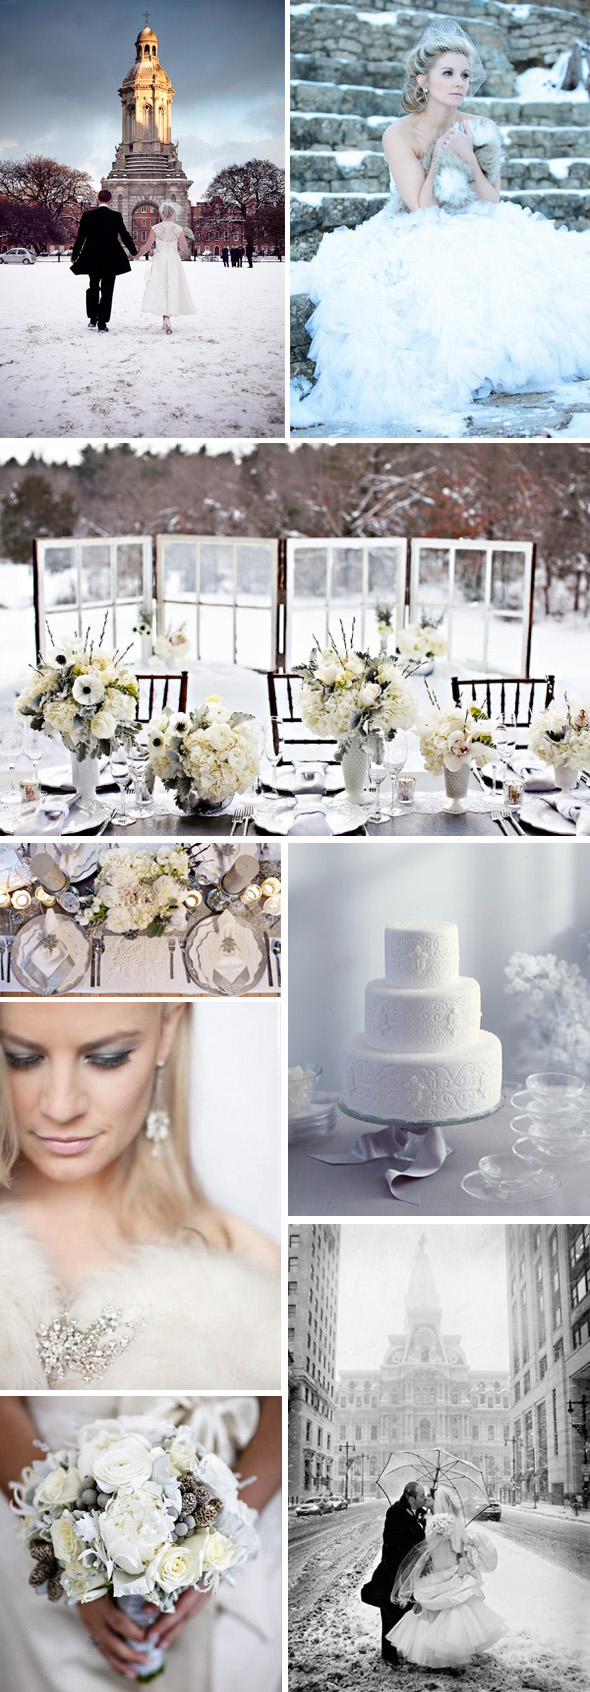 snow weddings Winter Weddings